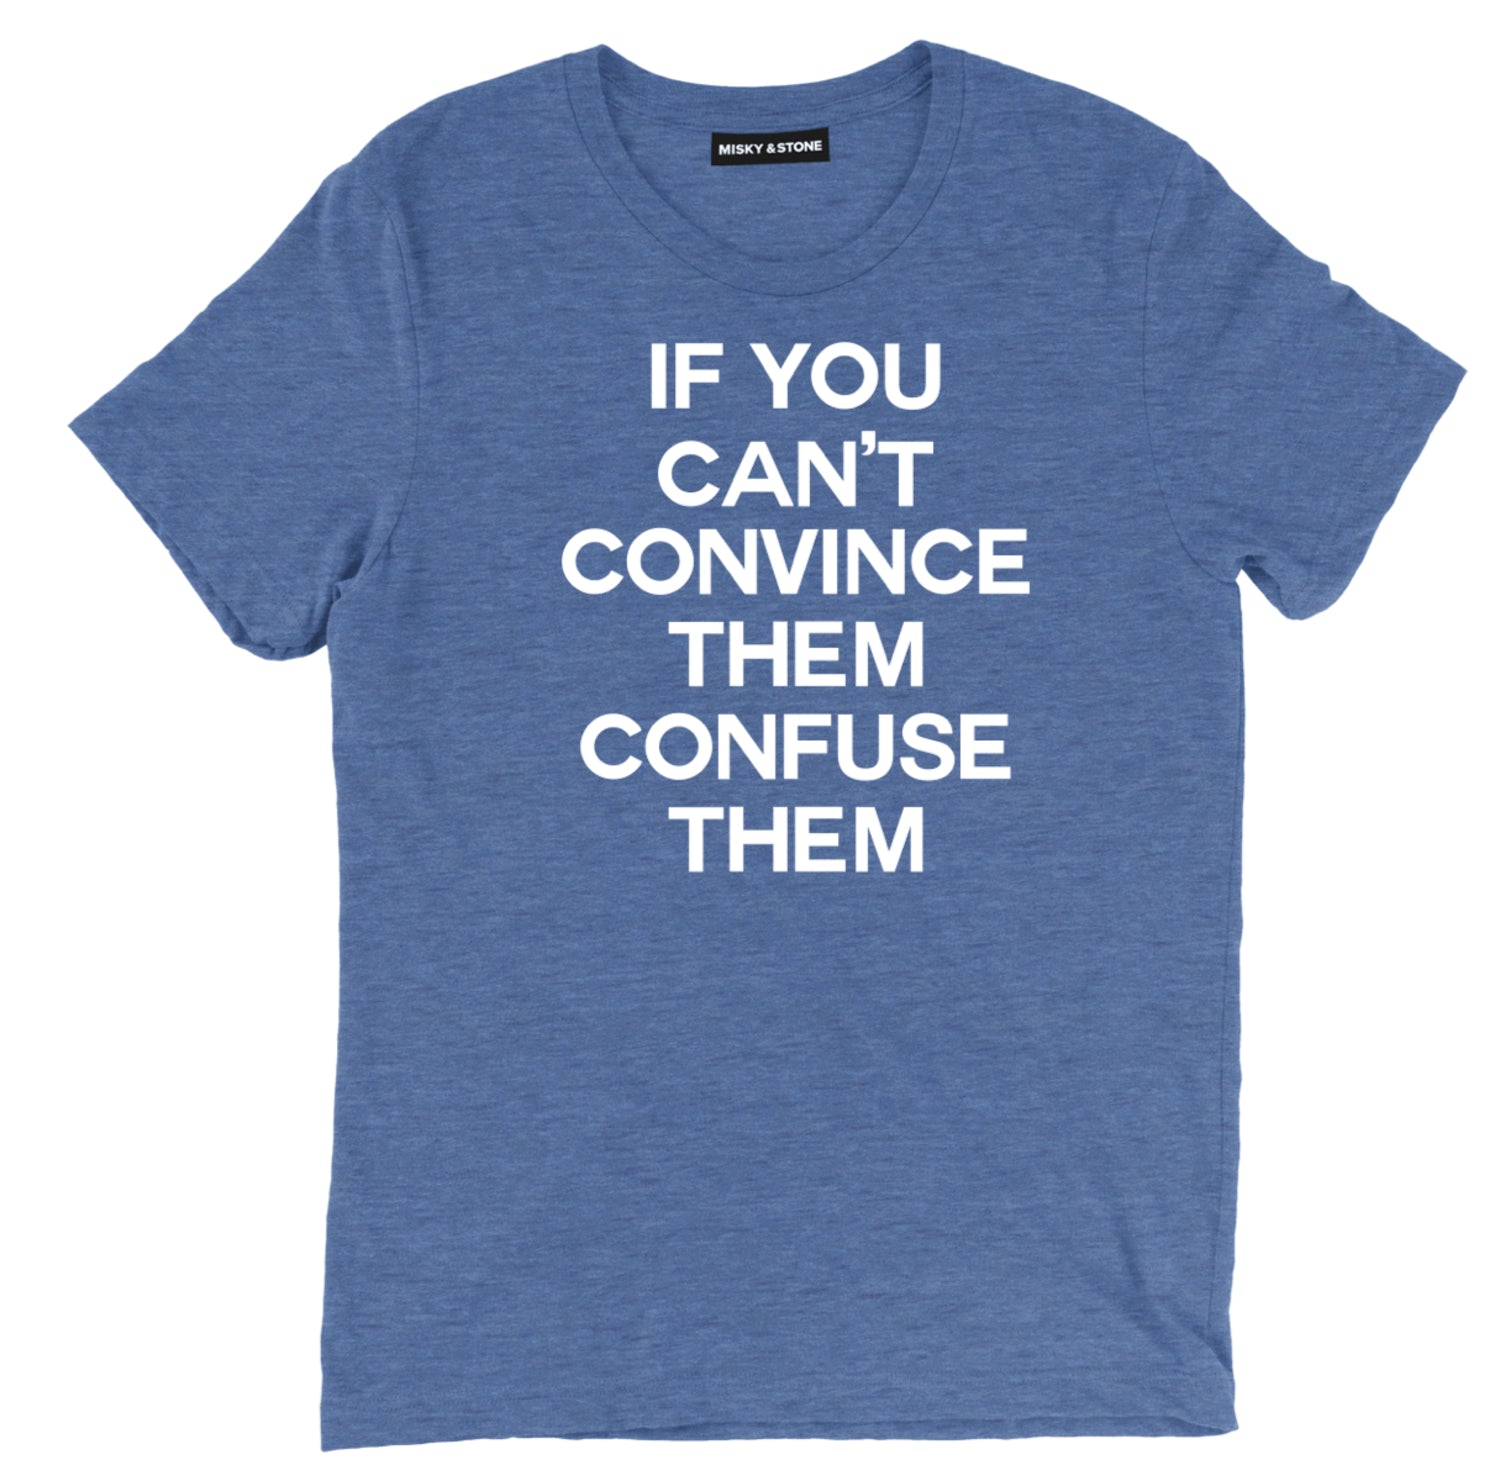 if you cant convince them confuse them tee, funny followers t shirt, funny confuse them tee